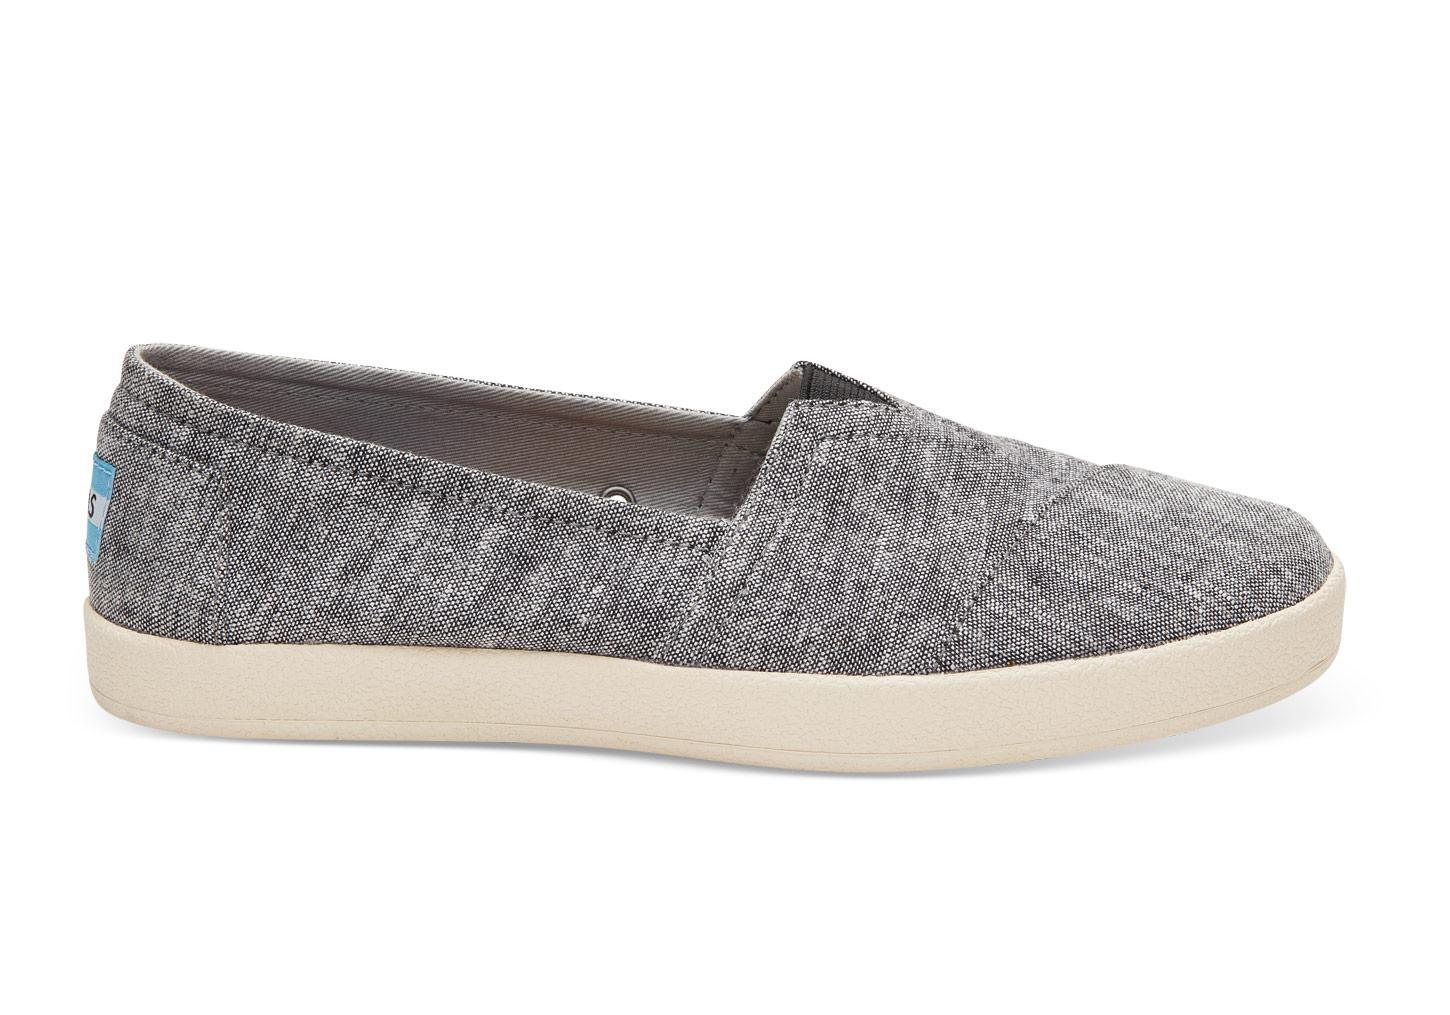 93e33e34a51 Lyst - TOMS Black Slub Chambray Women s Avalon Slip-ons in Black